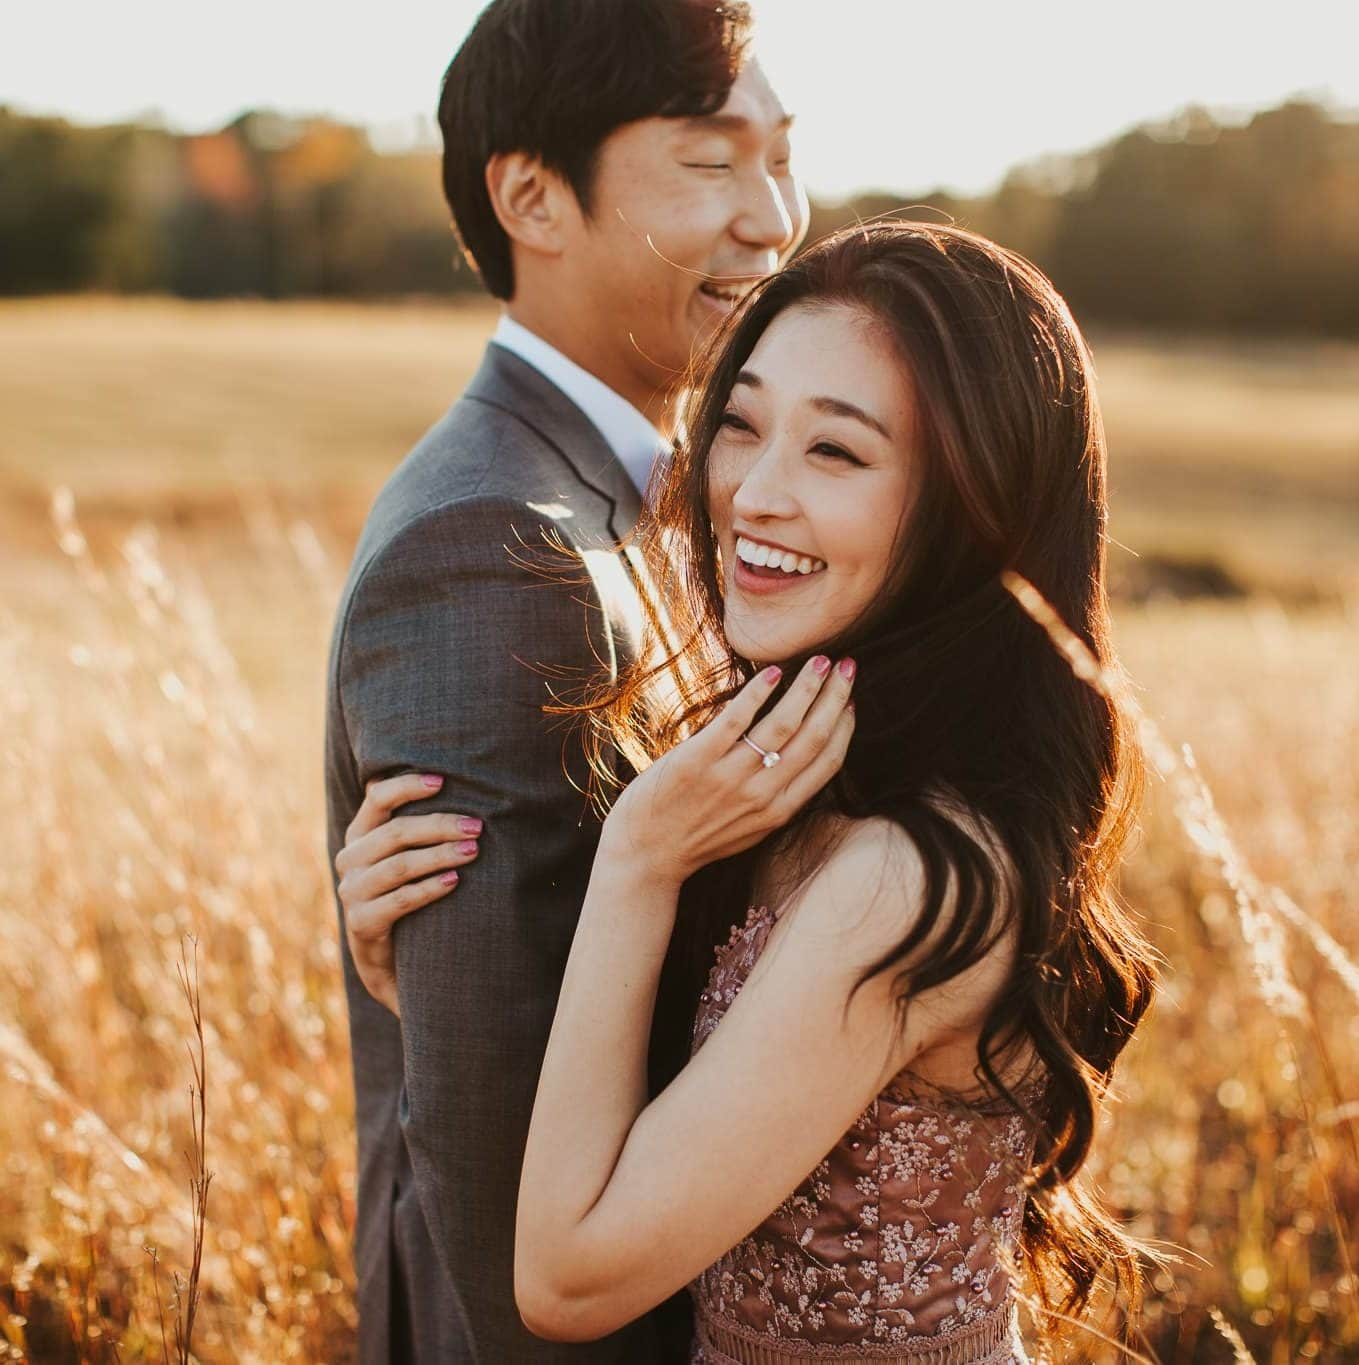 Engagement Photography Pricing and Information